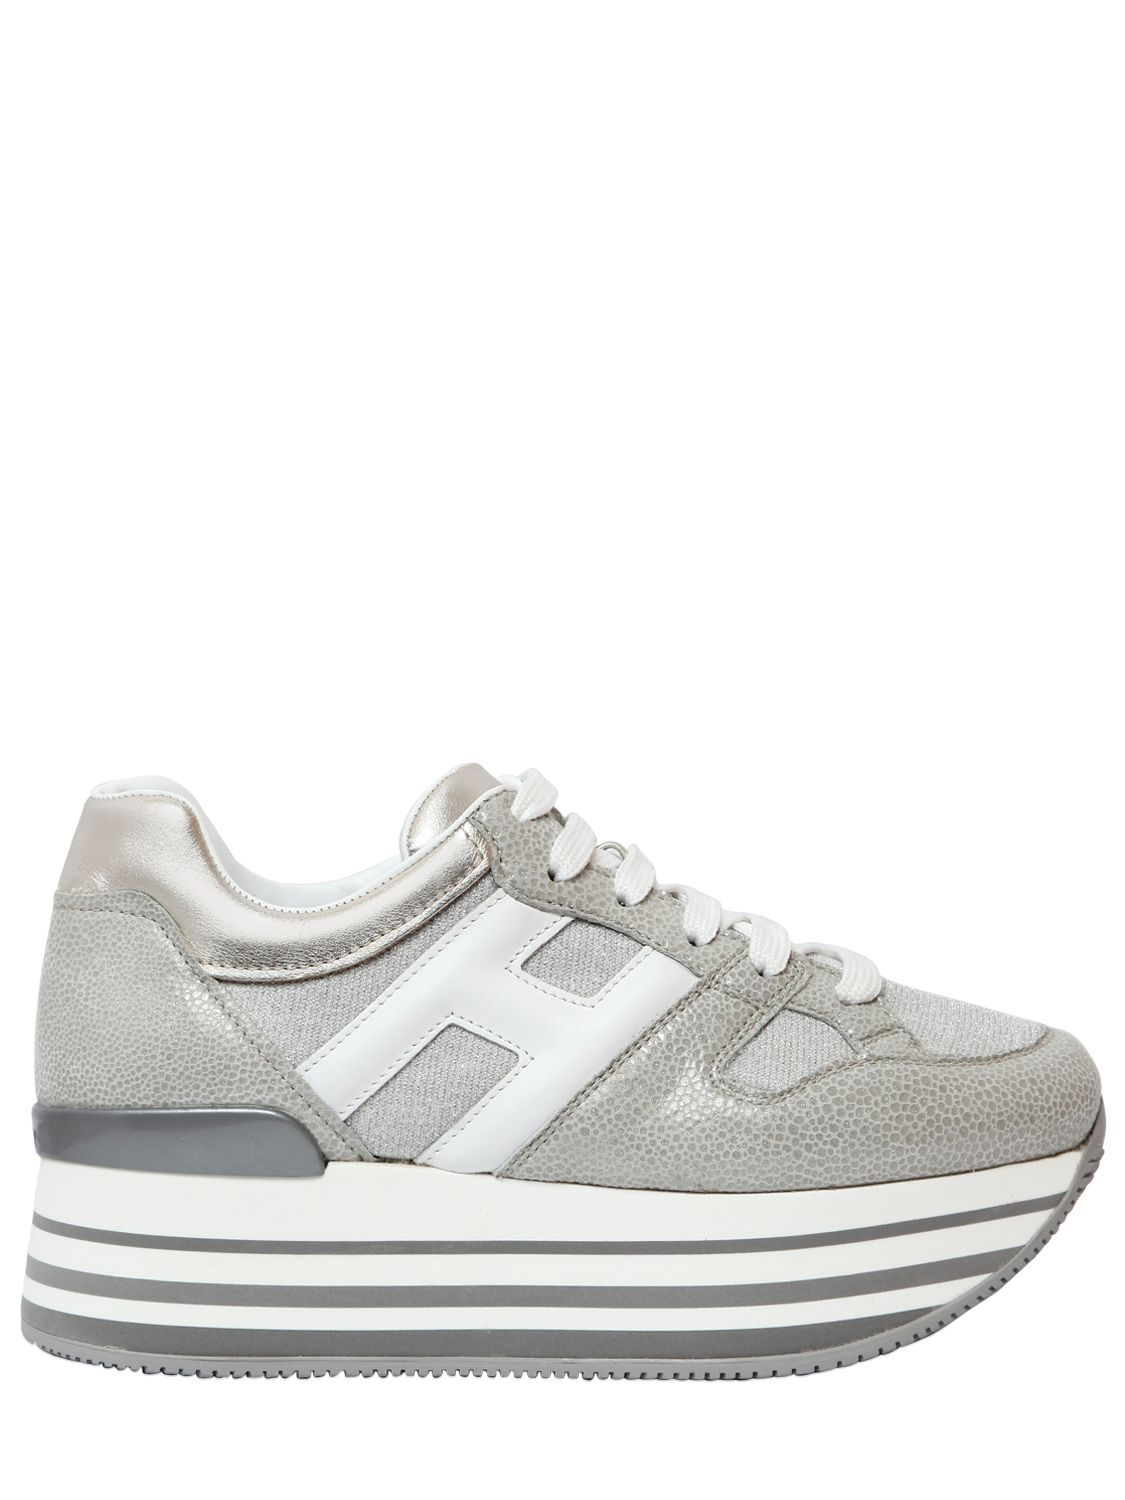 HOGAN . #hogan #shoes # | Leather sneakers, Sneakers, Leather